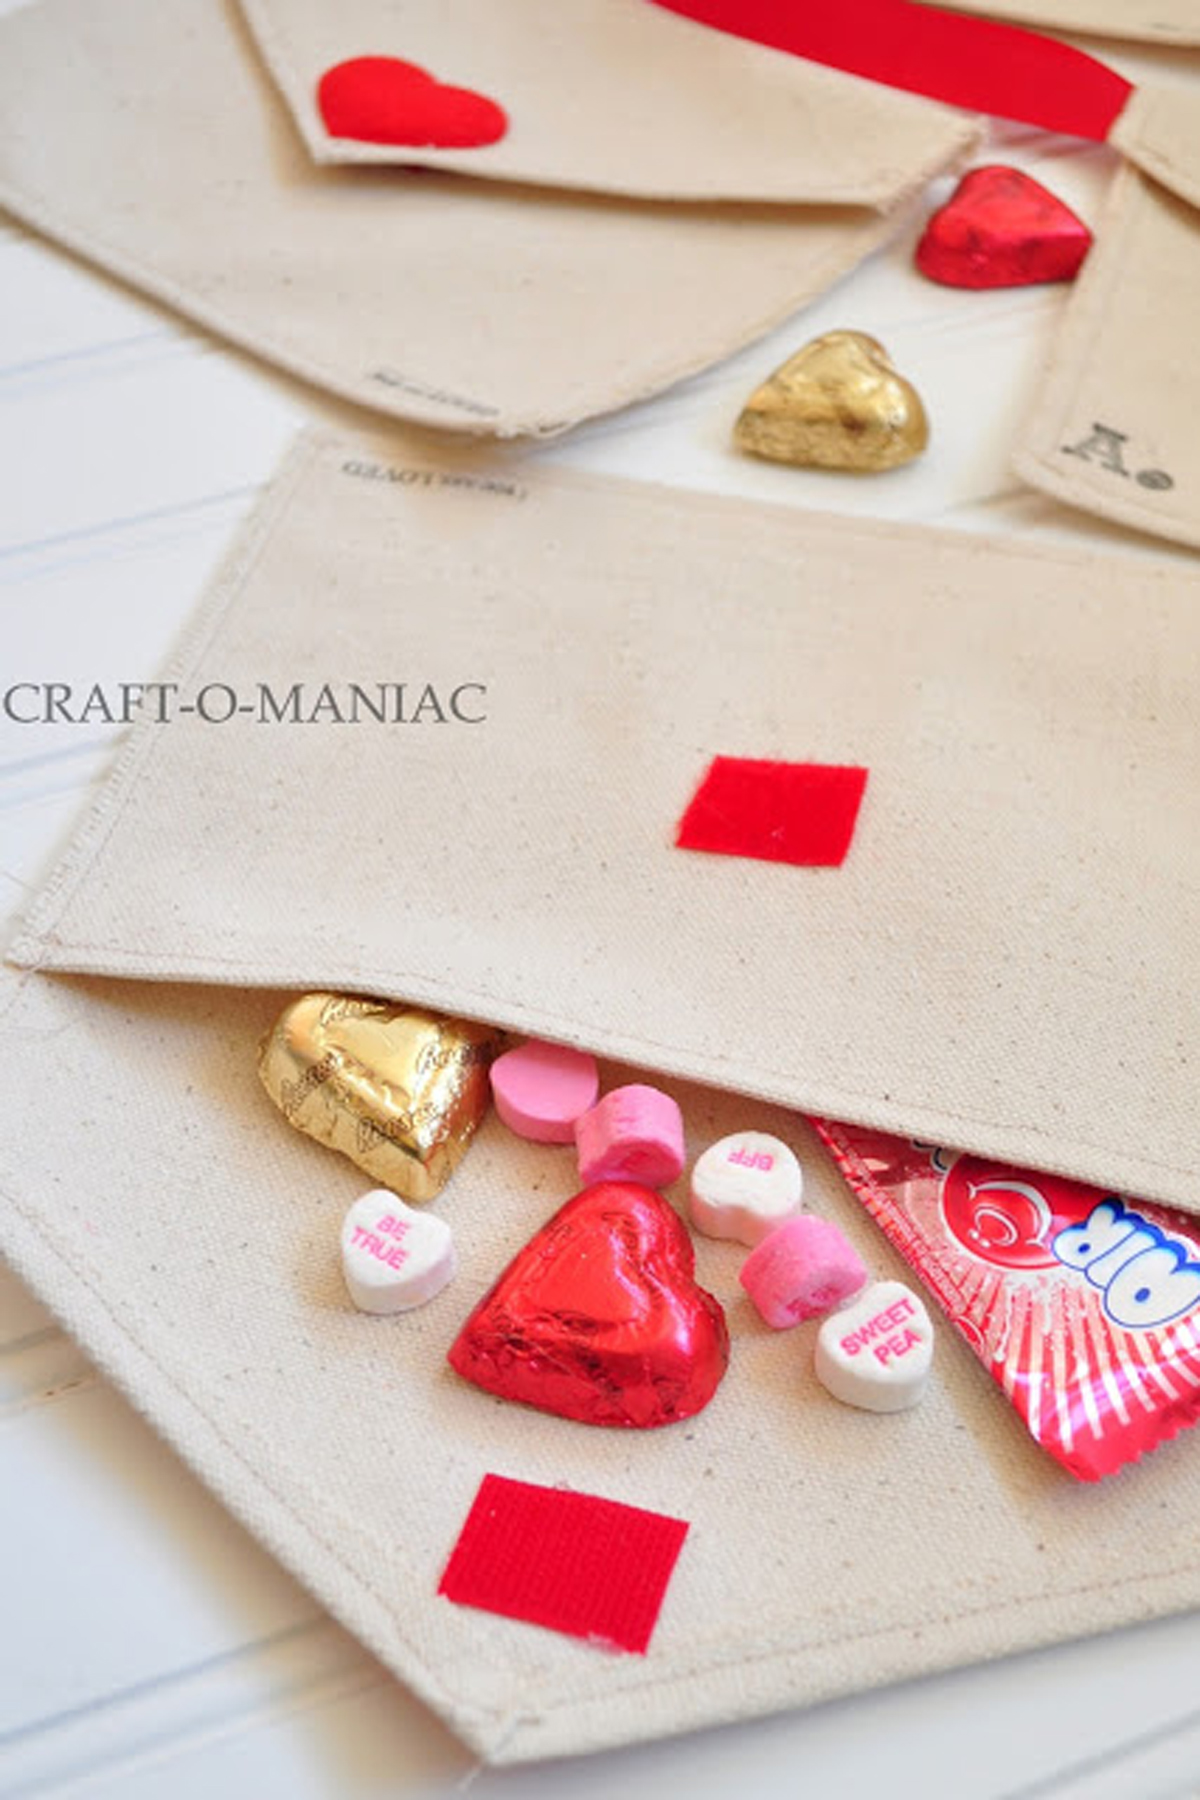 diy valentine craft ideas 42 s day crafts and diy ideas best ideas for 4264